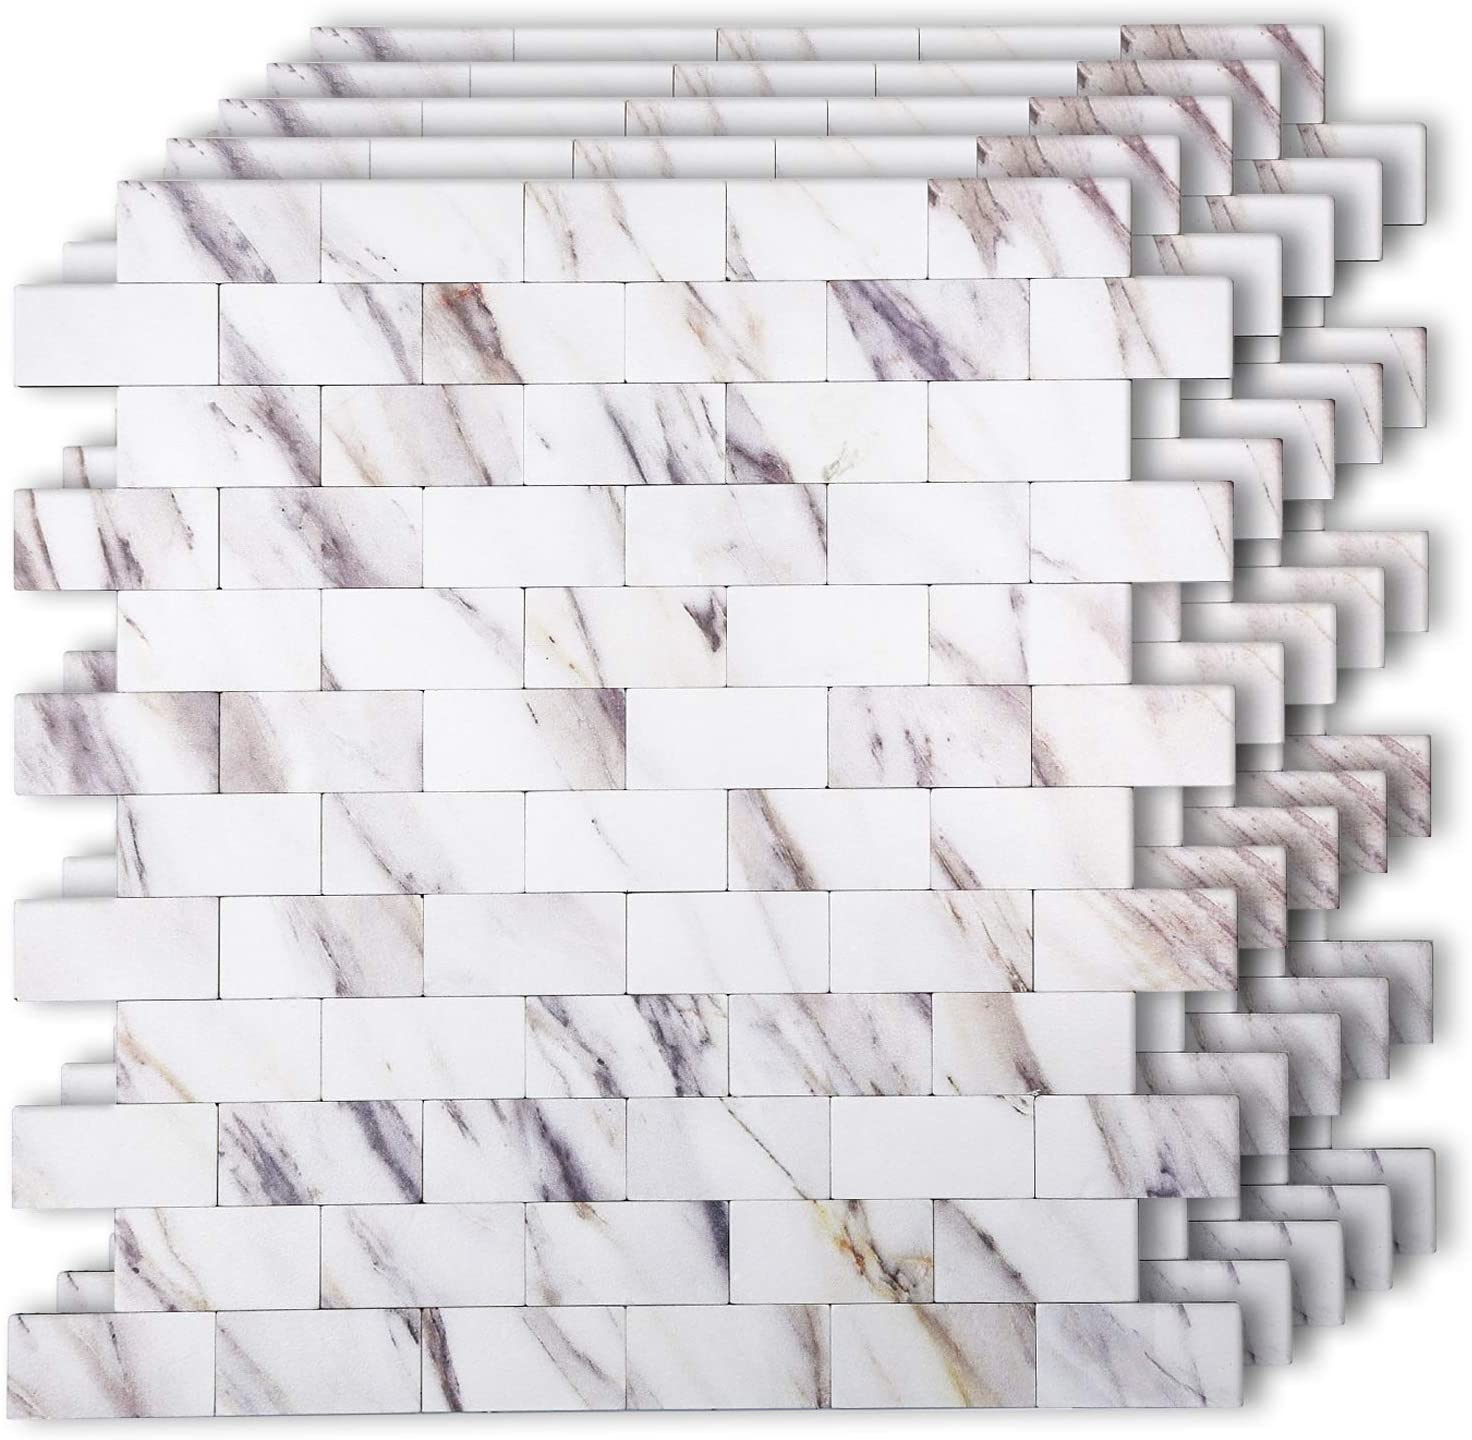 HomeyMosaic Peel and Stick Tile Backsplash for Kitchen Wall Decor Metal Mosaic Smart Tiles Aluminum Surface,Subway Marble Look Panel(12